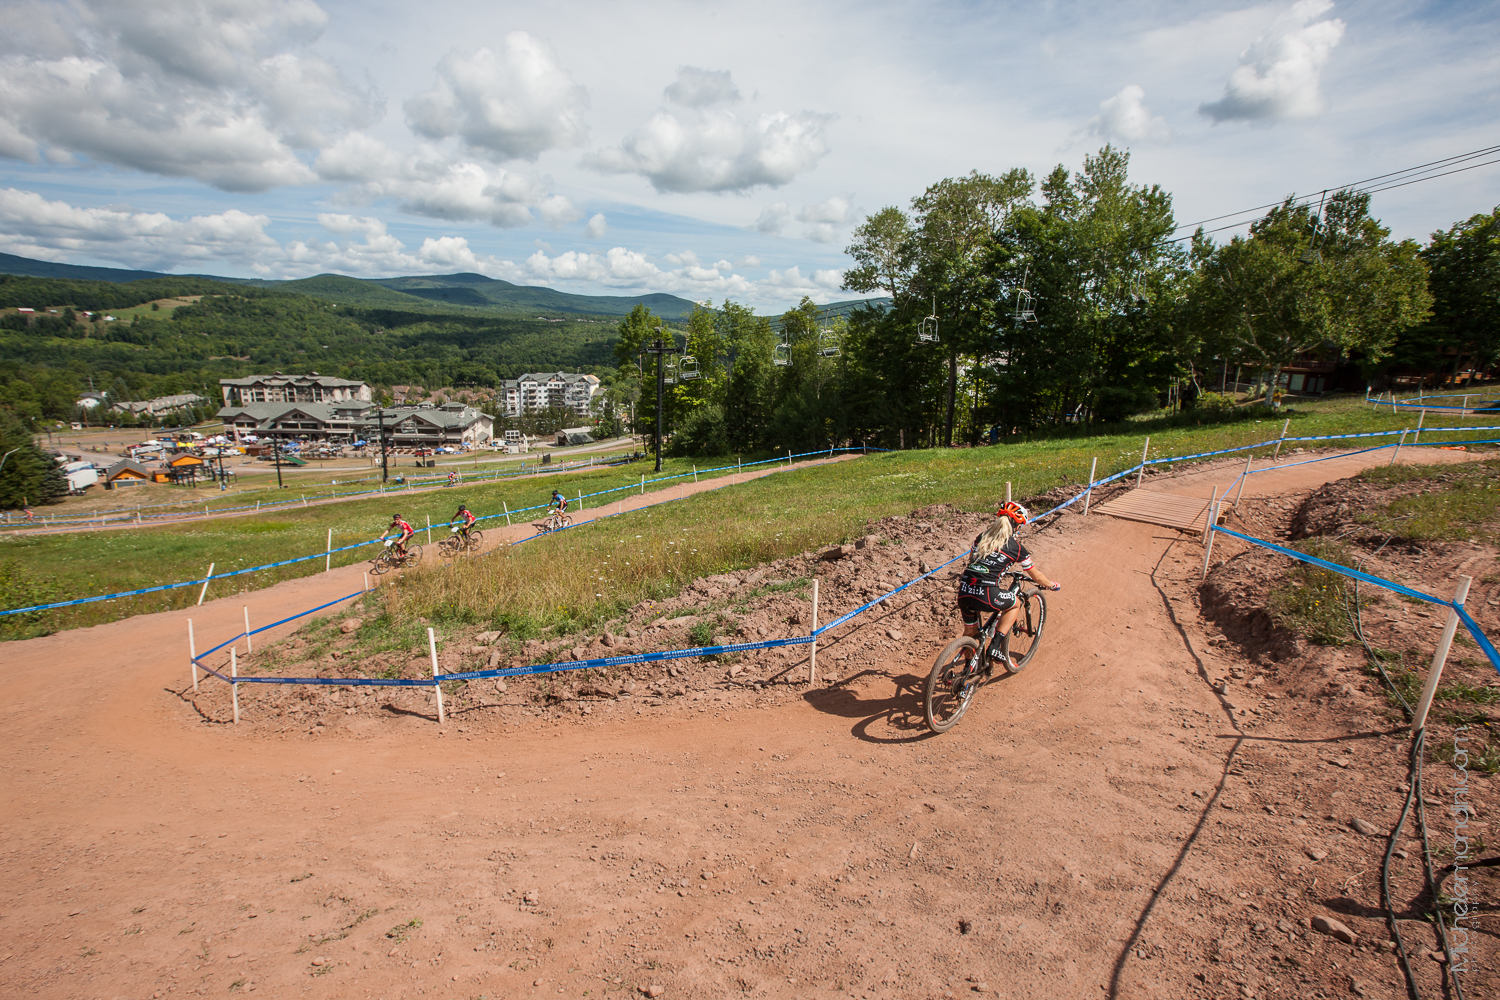 Emilie Collomb sulla salita del circuito di Windham - New York - Ph: Michele Mondini